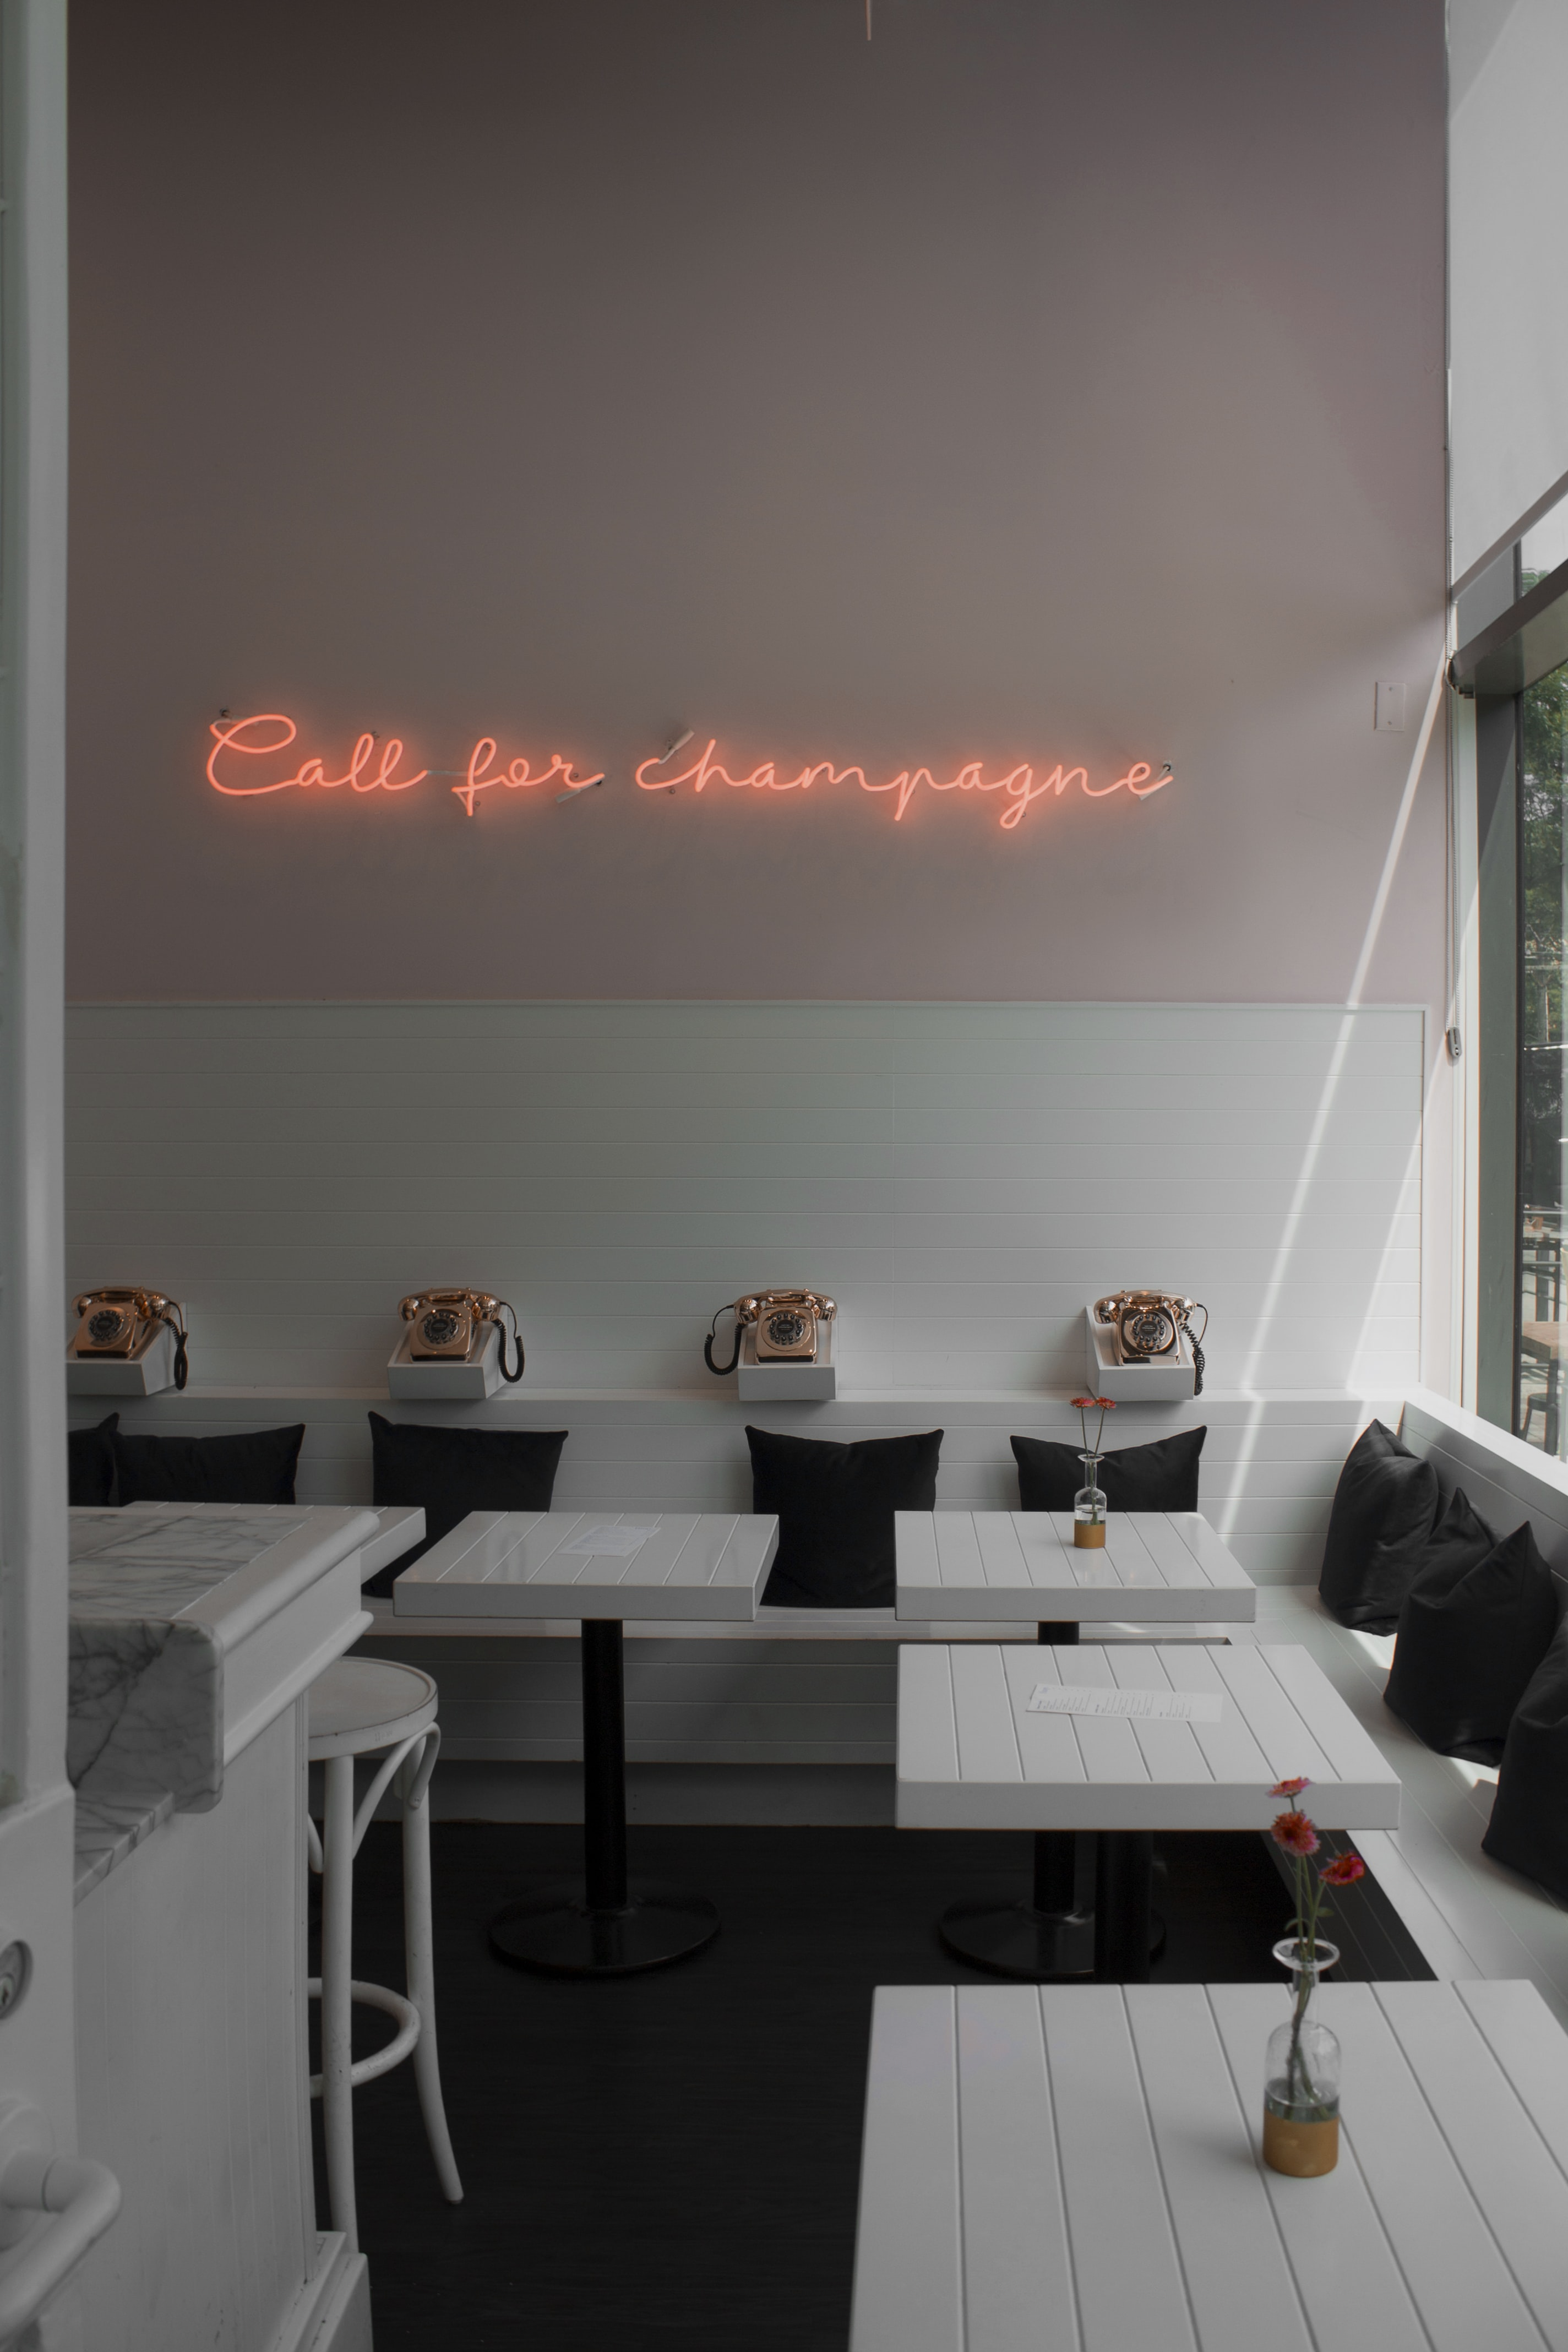 cal for champagne signage